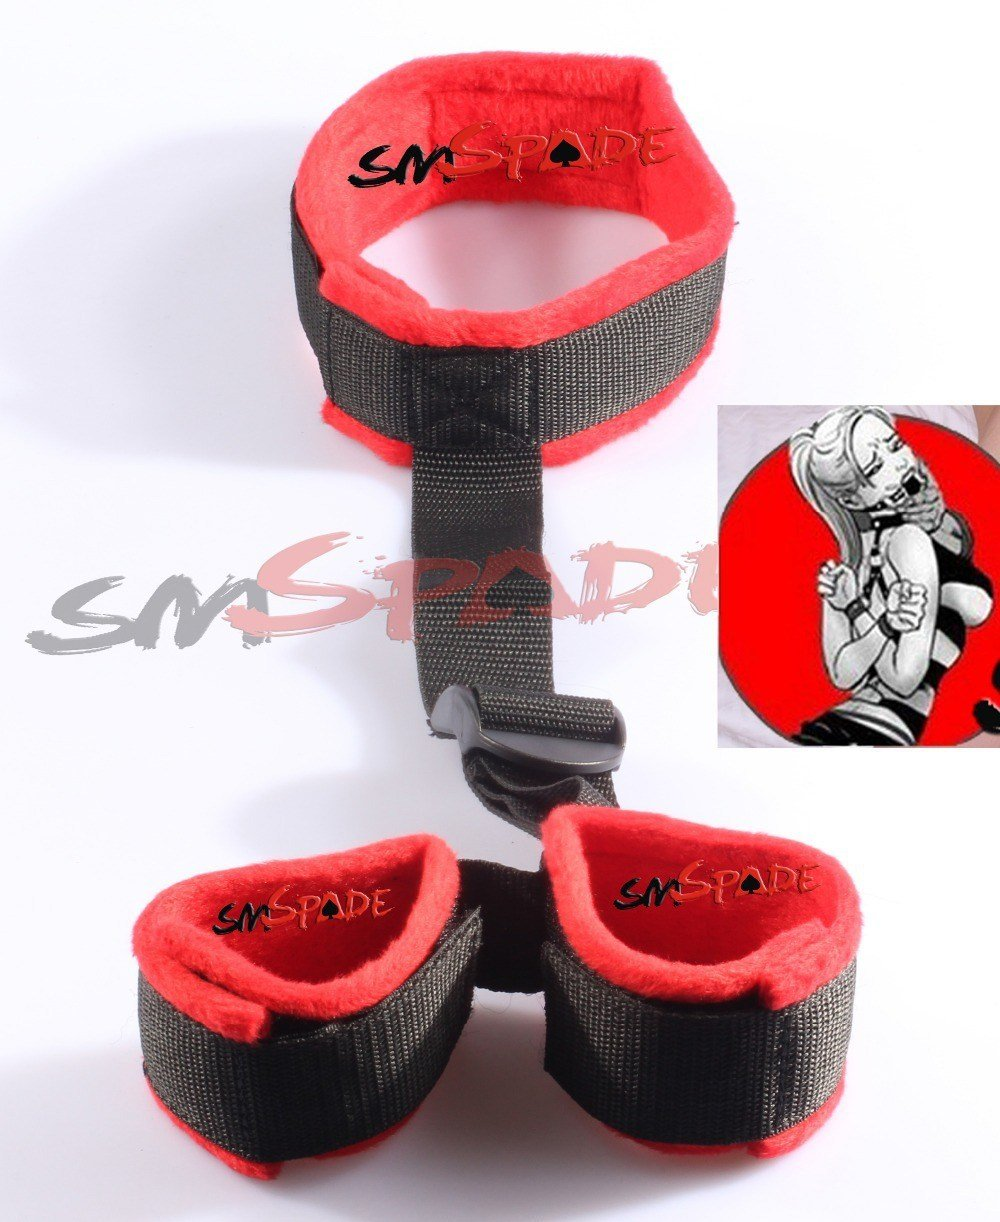 Best Free Shipping Red Velvet Wrist Cuffs To Collar Restraint With Pictures